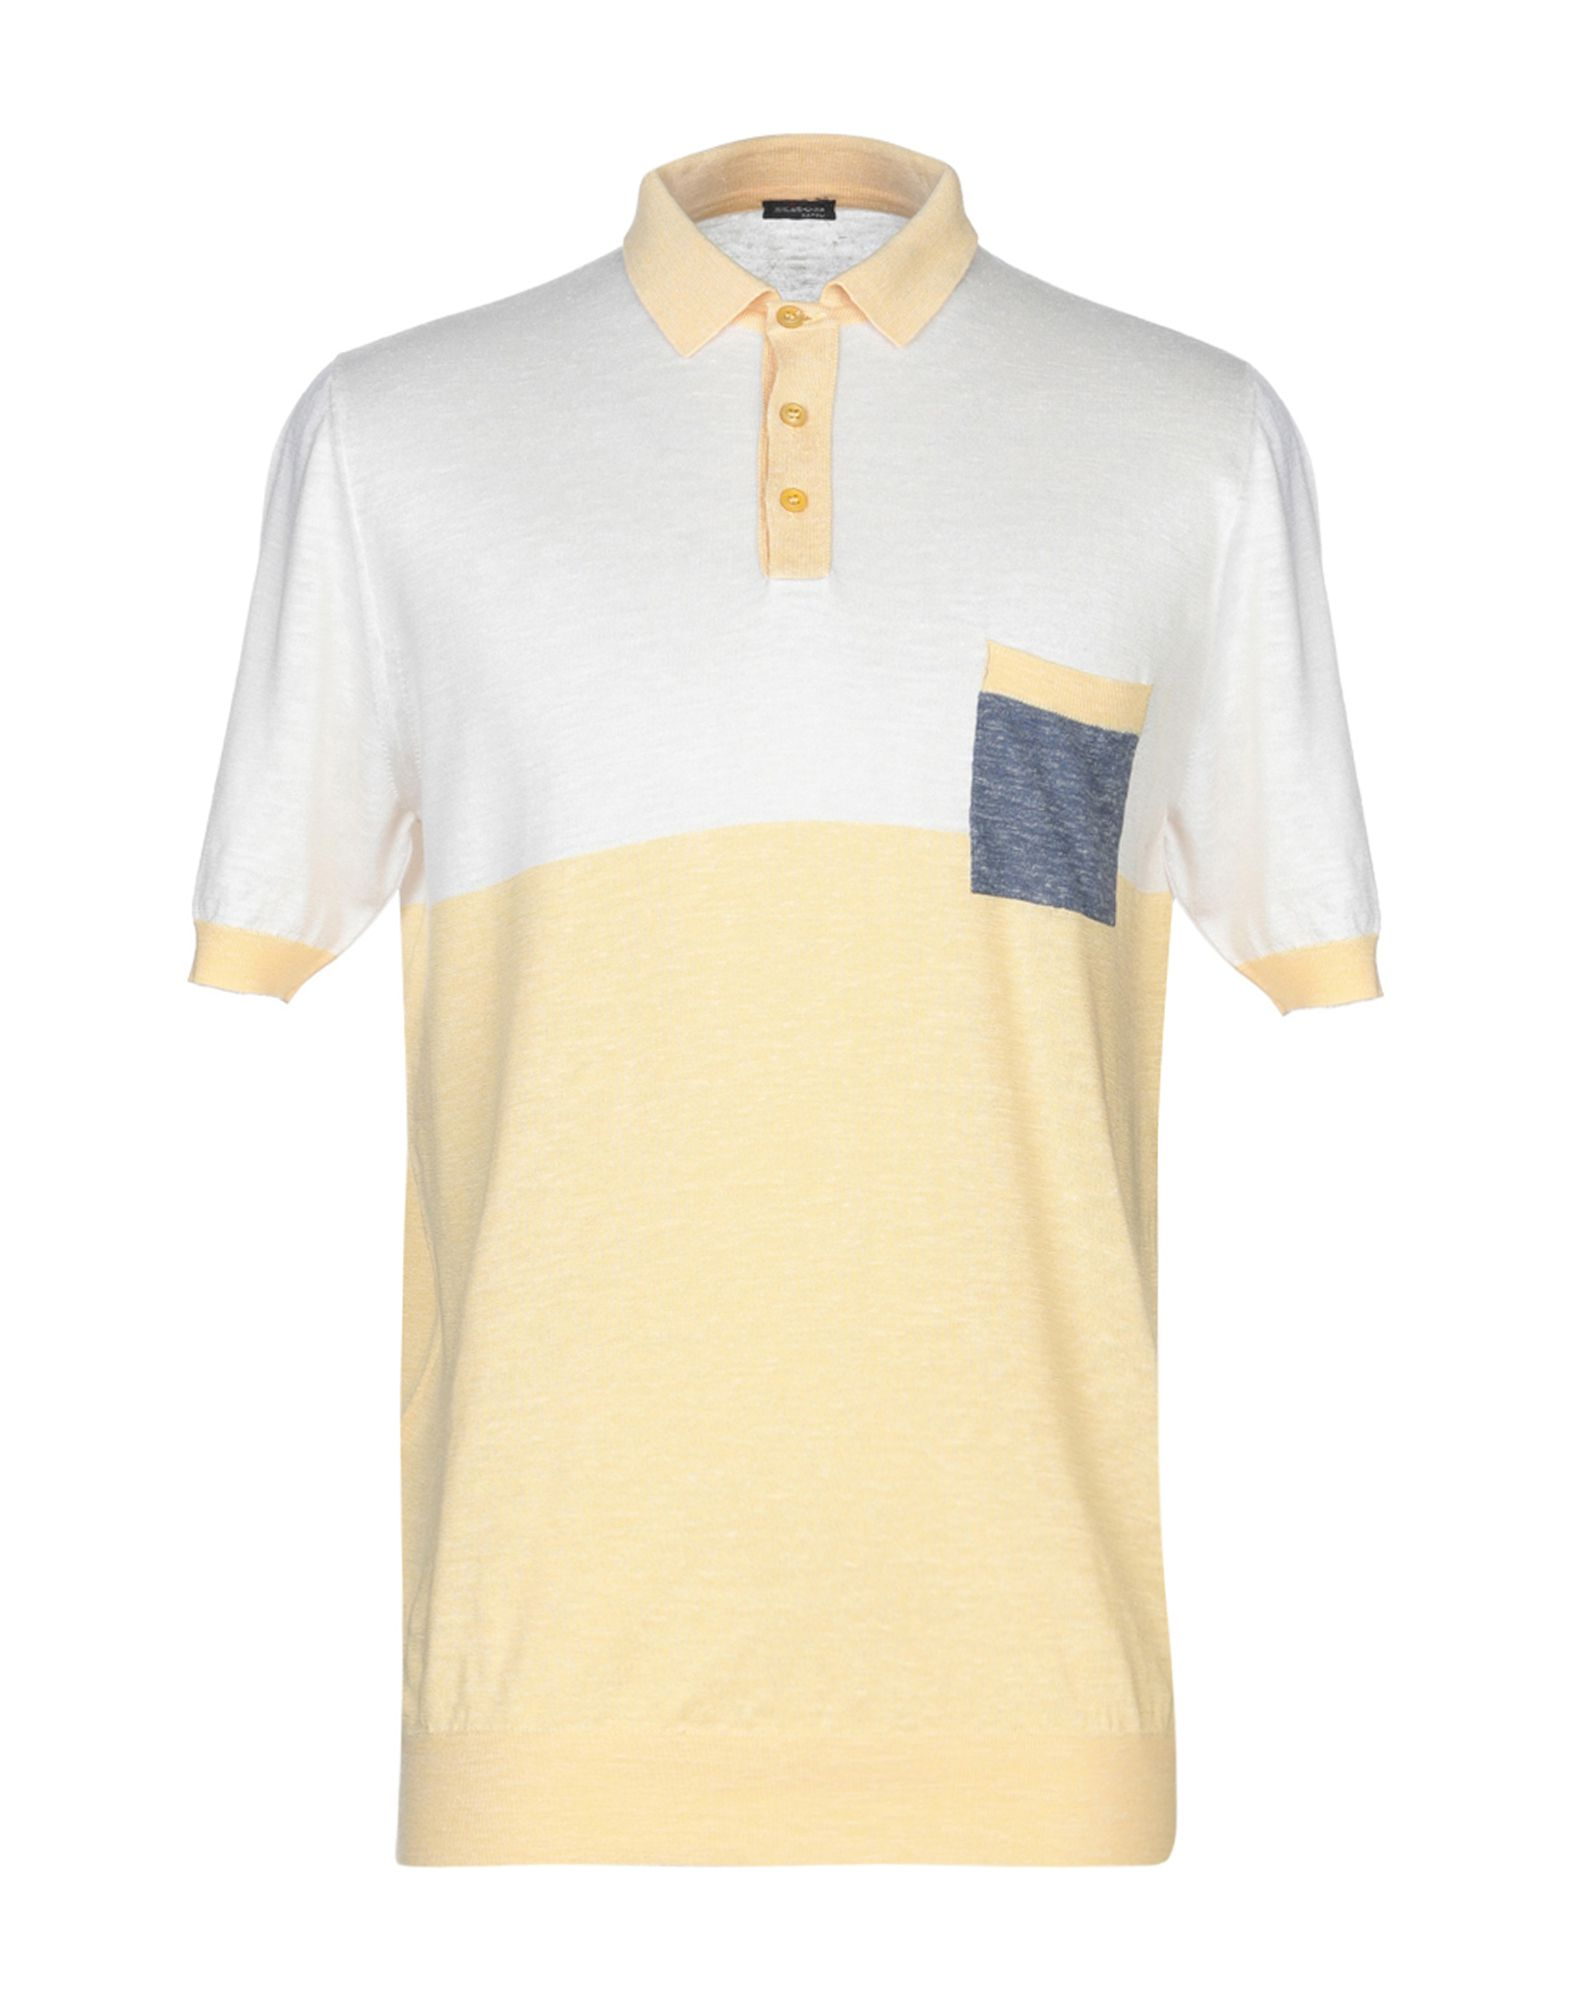 cc12d86cf84 Kiton Men Spring-Summer and Fall-Winter Collections - Shop online at YOOX